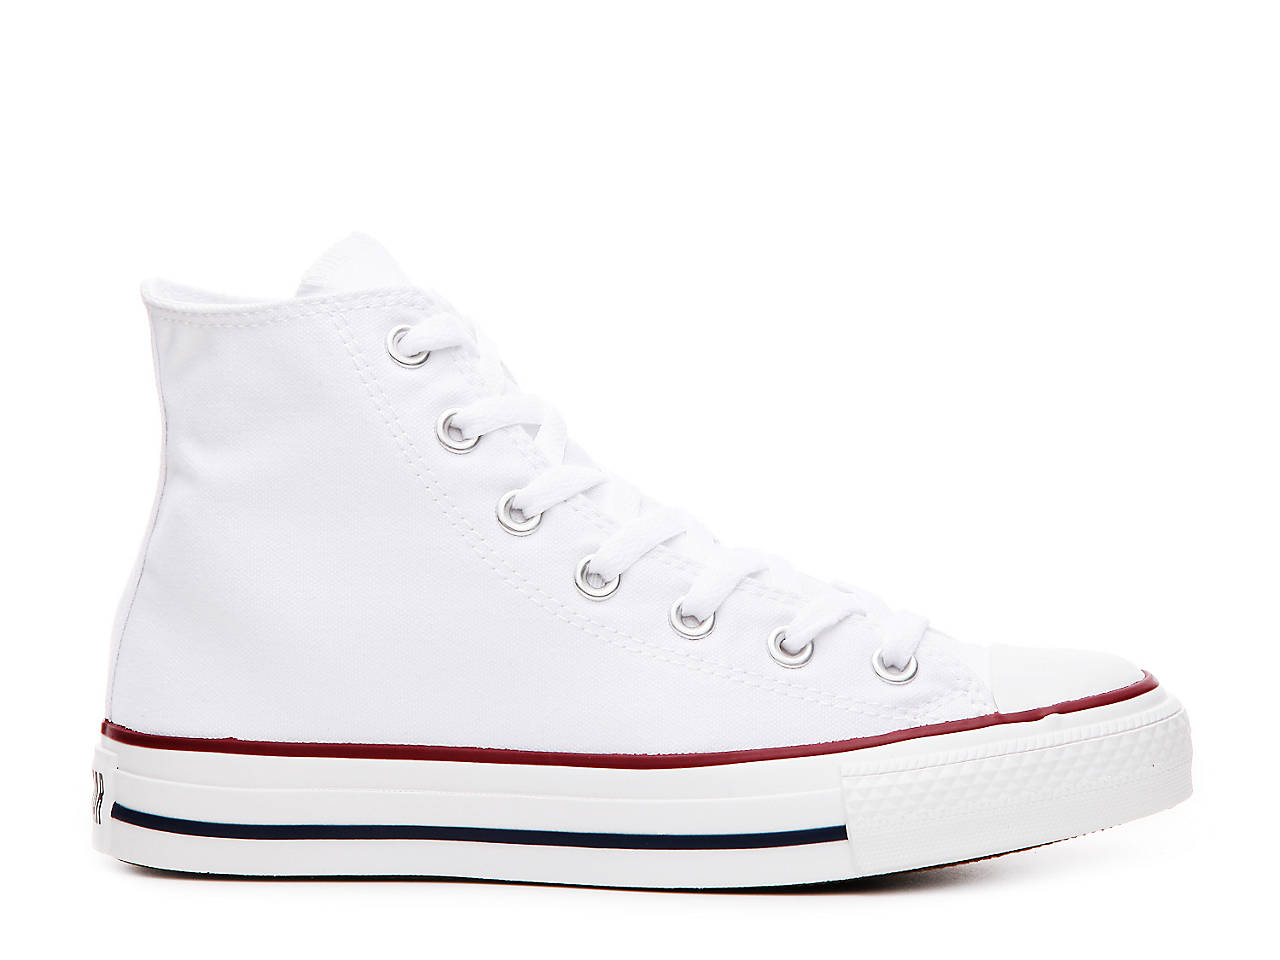 ffb92efeec43 Converse Chuck Taylor All Star High-Top Sneaker - Women s Women s ...